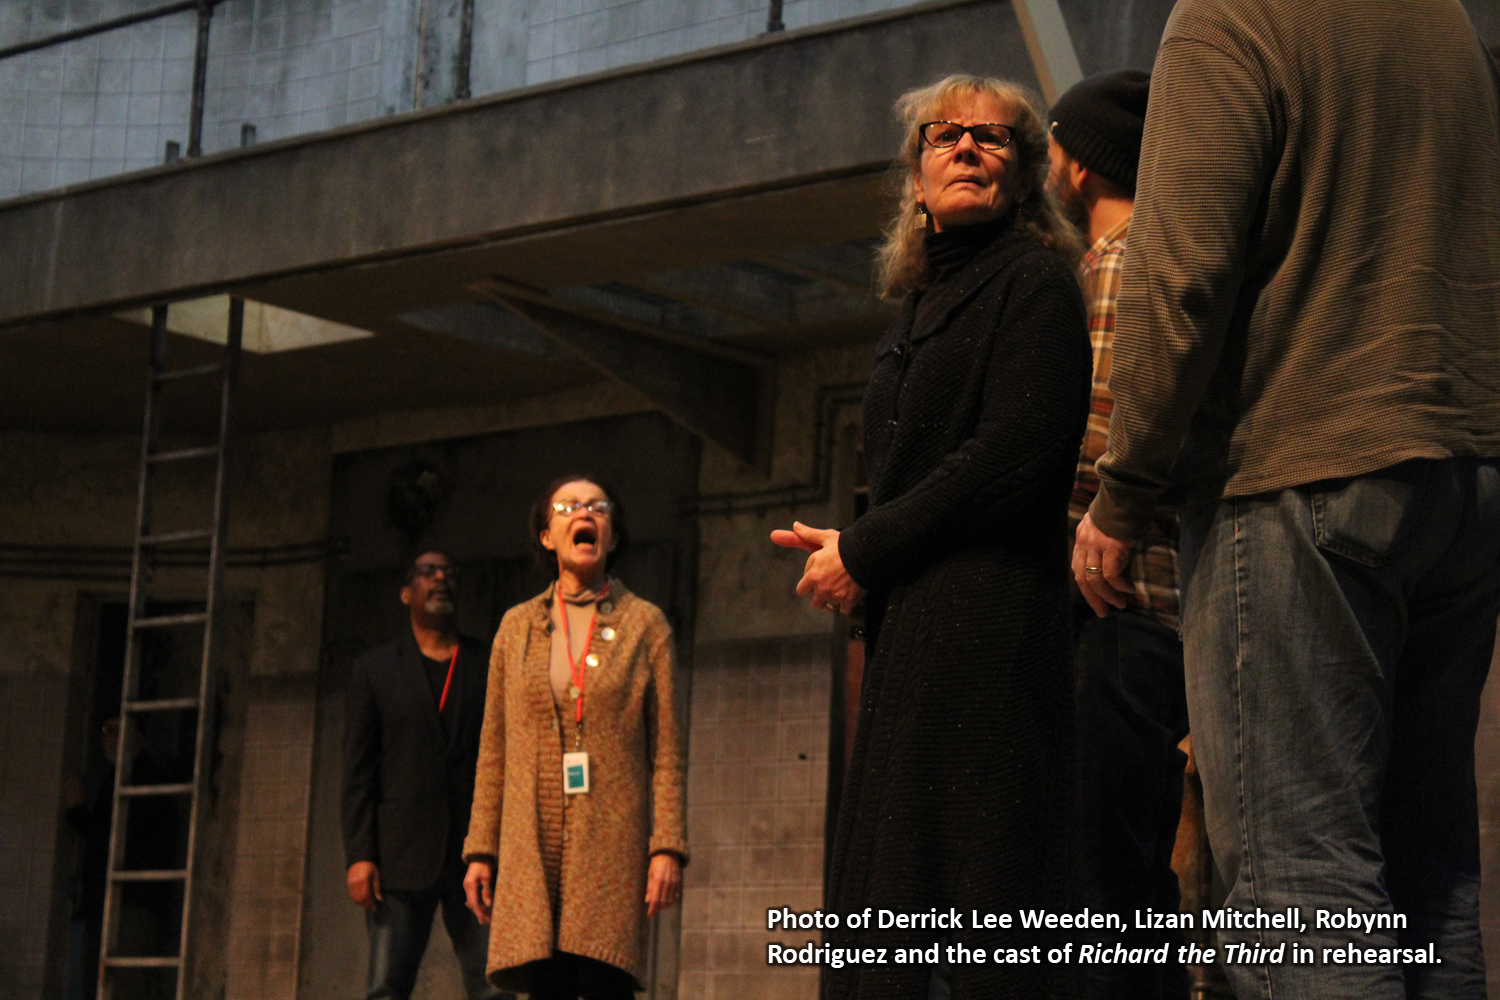 Photo of Derrick Lee Weeden, Lizan Mitchell, Robynn Rodriguez and the cast of Richard the Third in rehearsal.